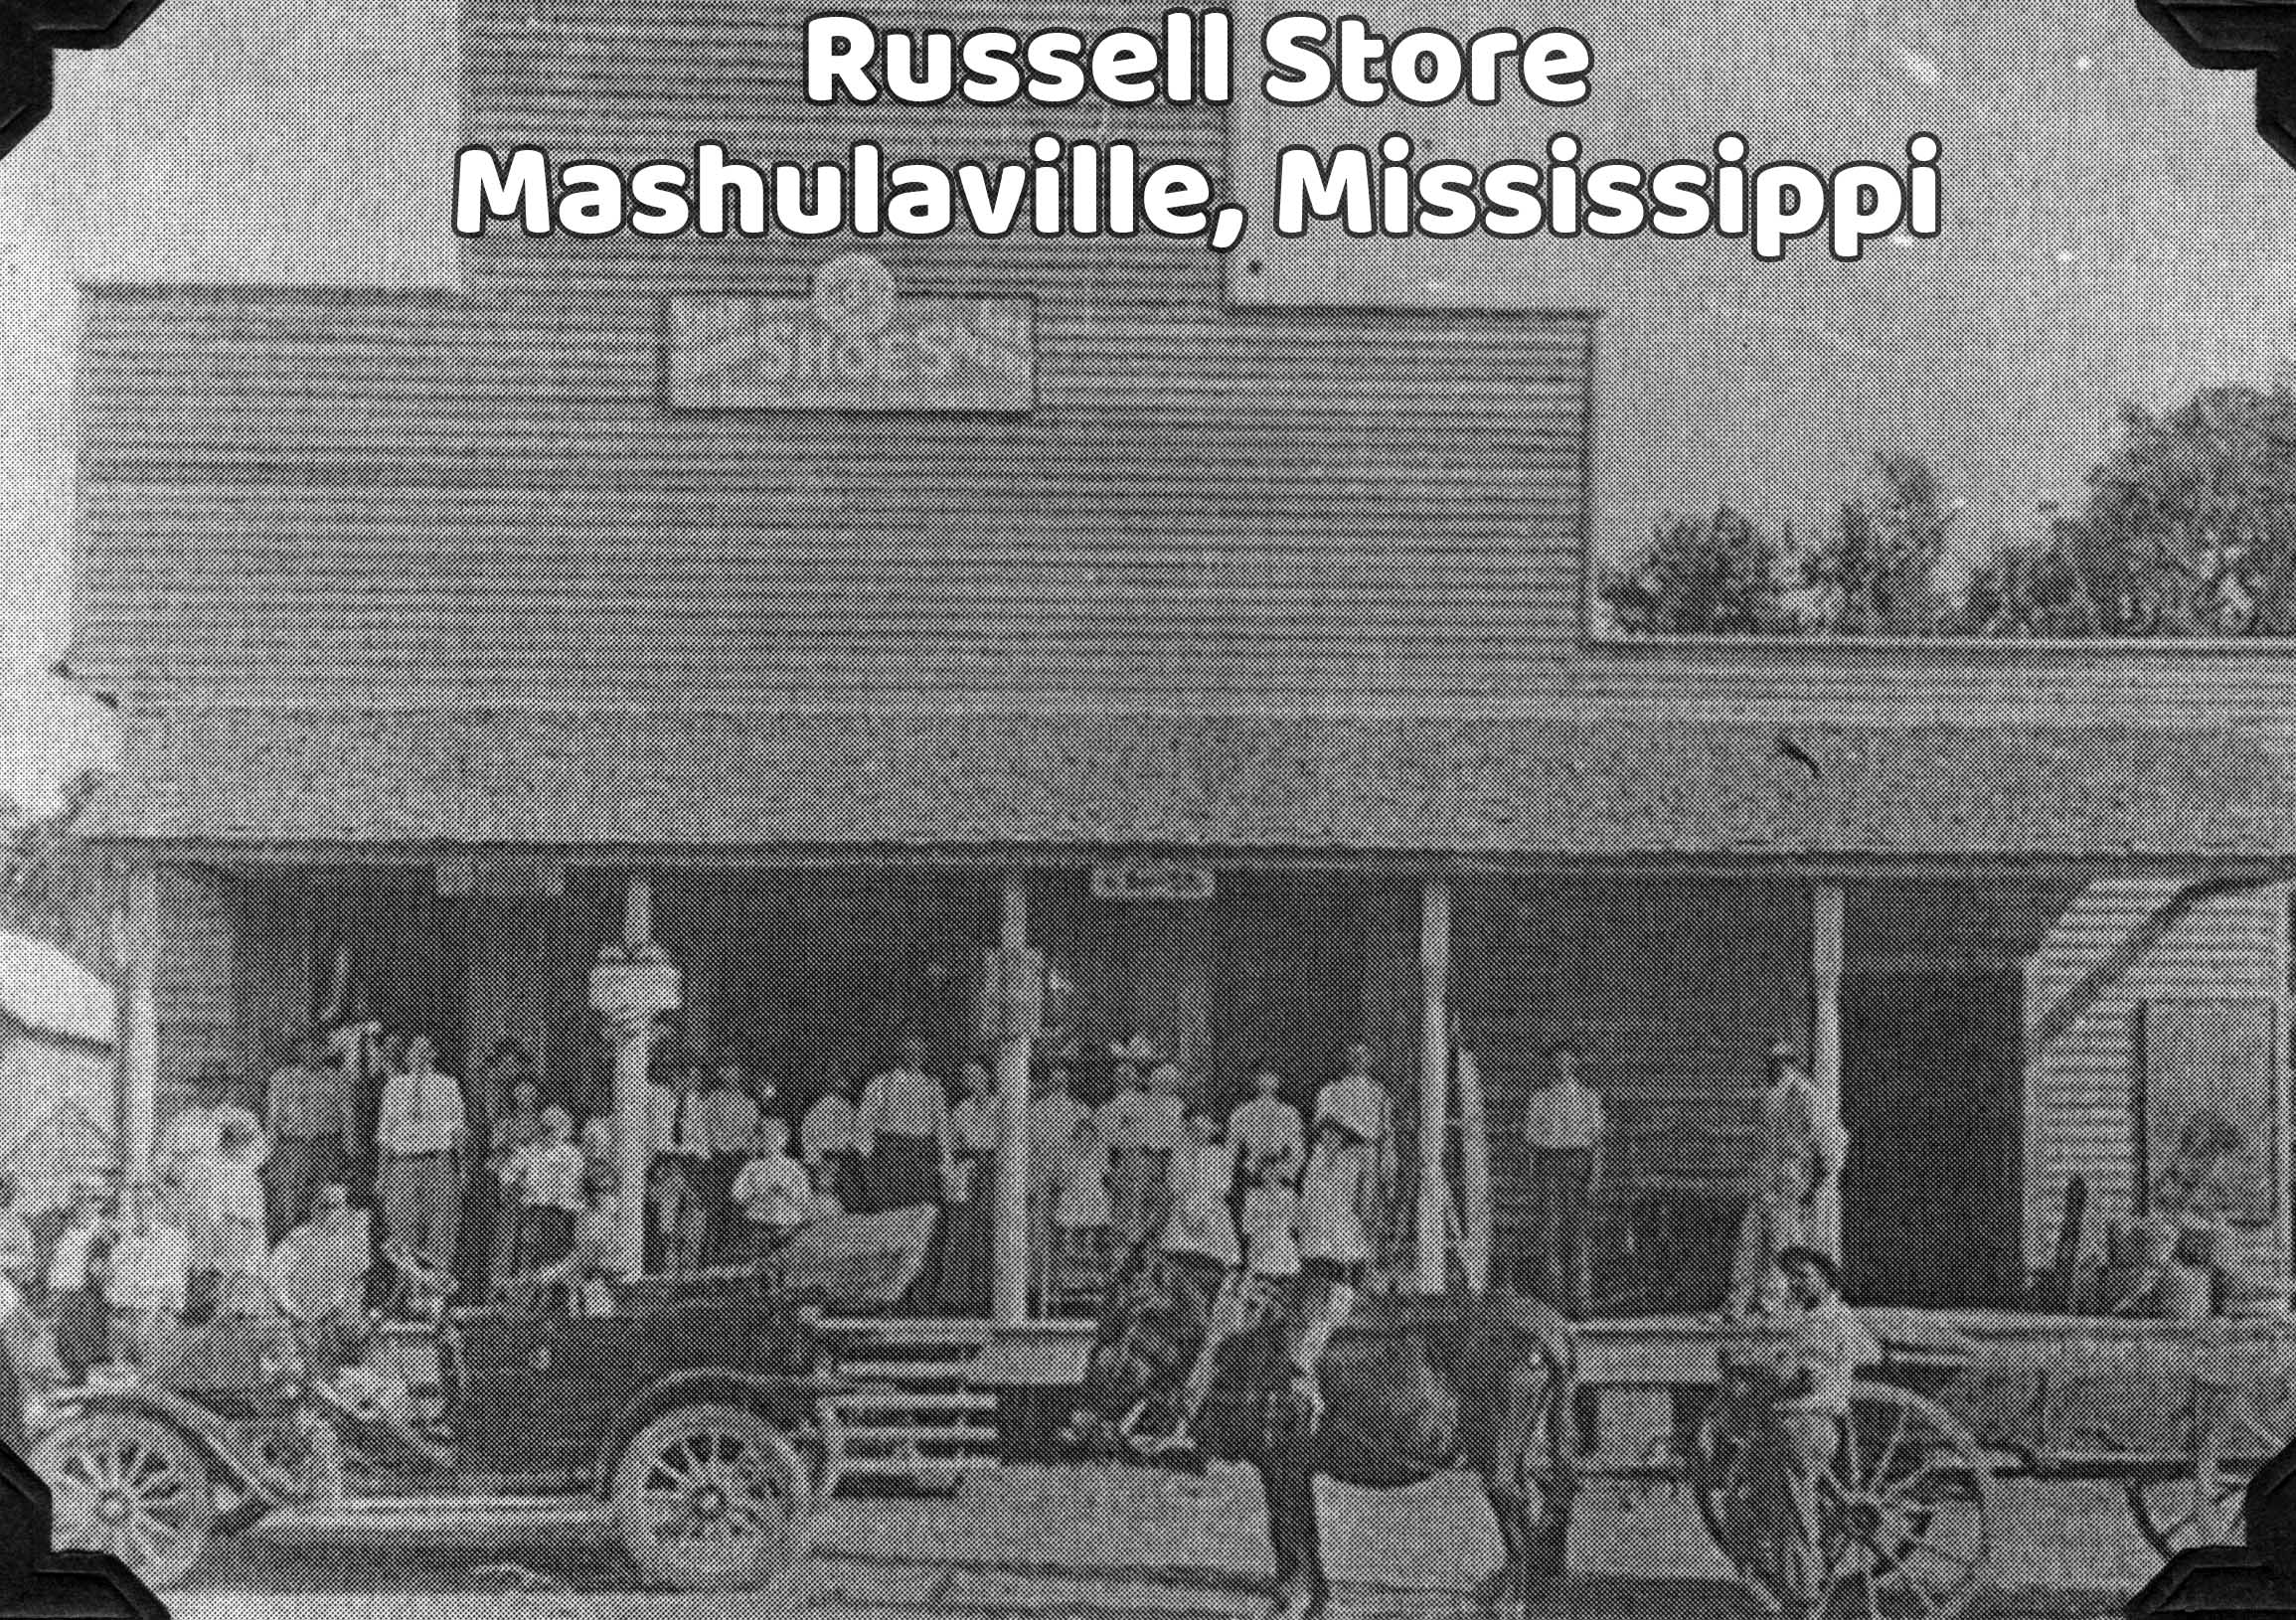 Russell Store in Mashulaville, Mississippi